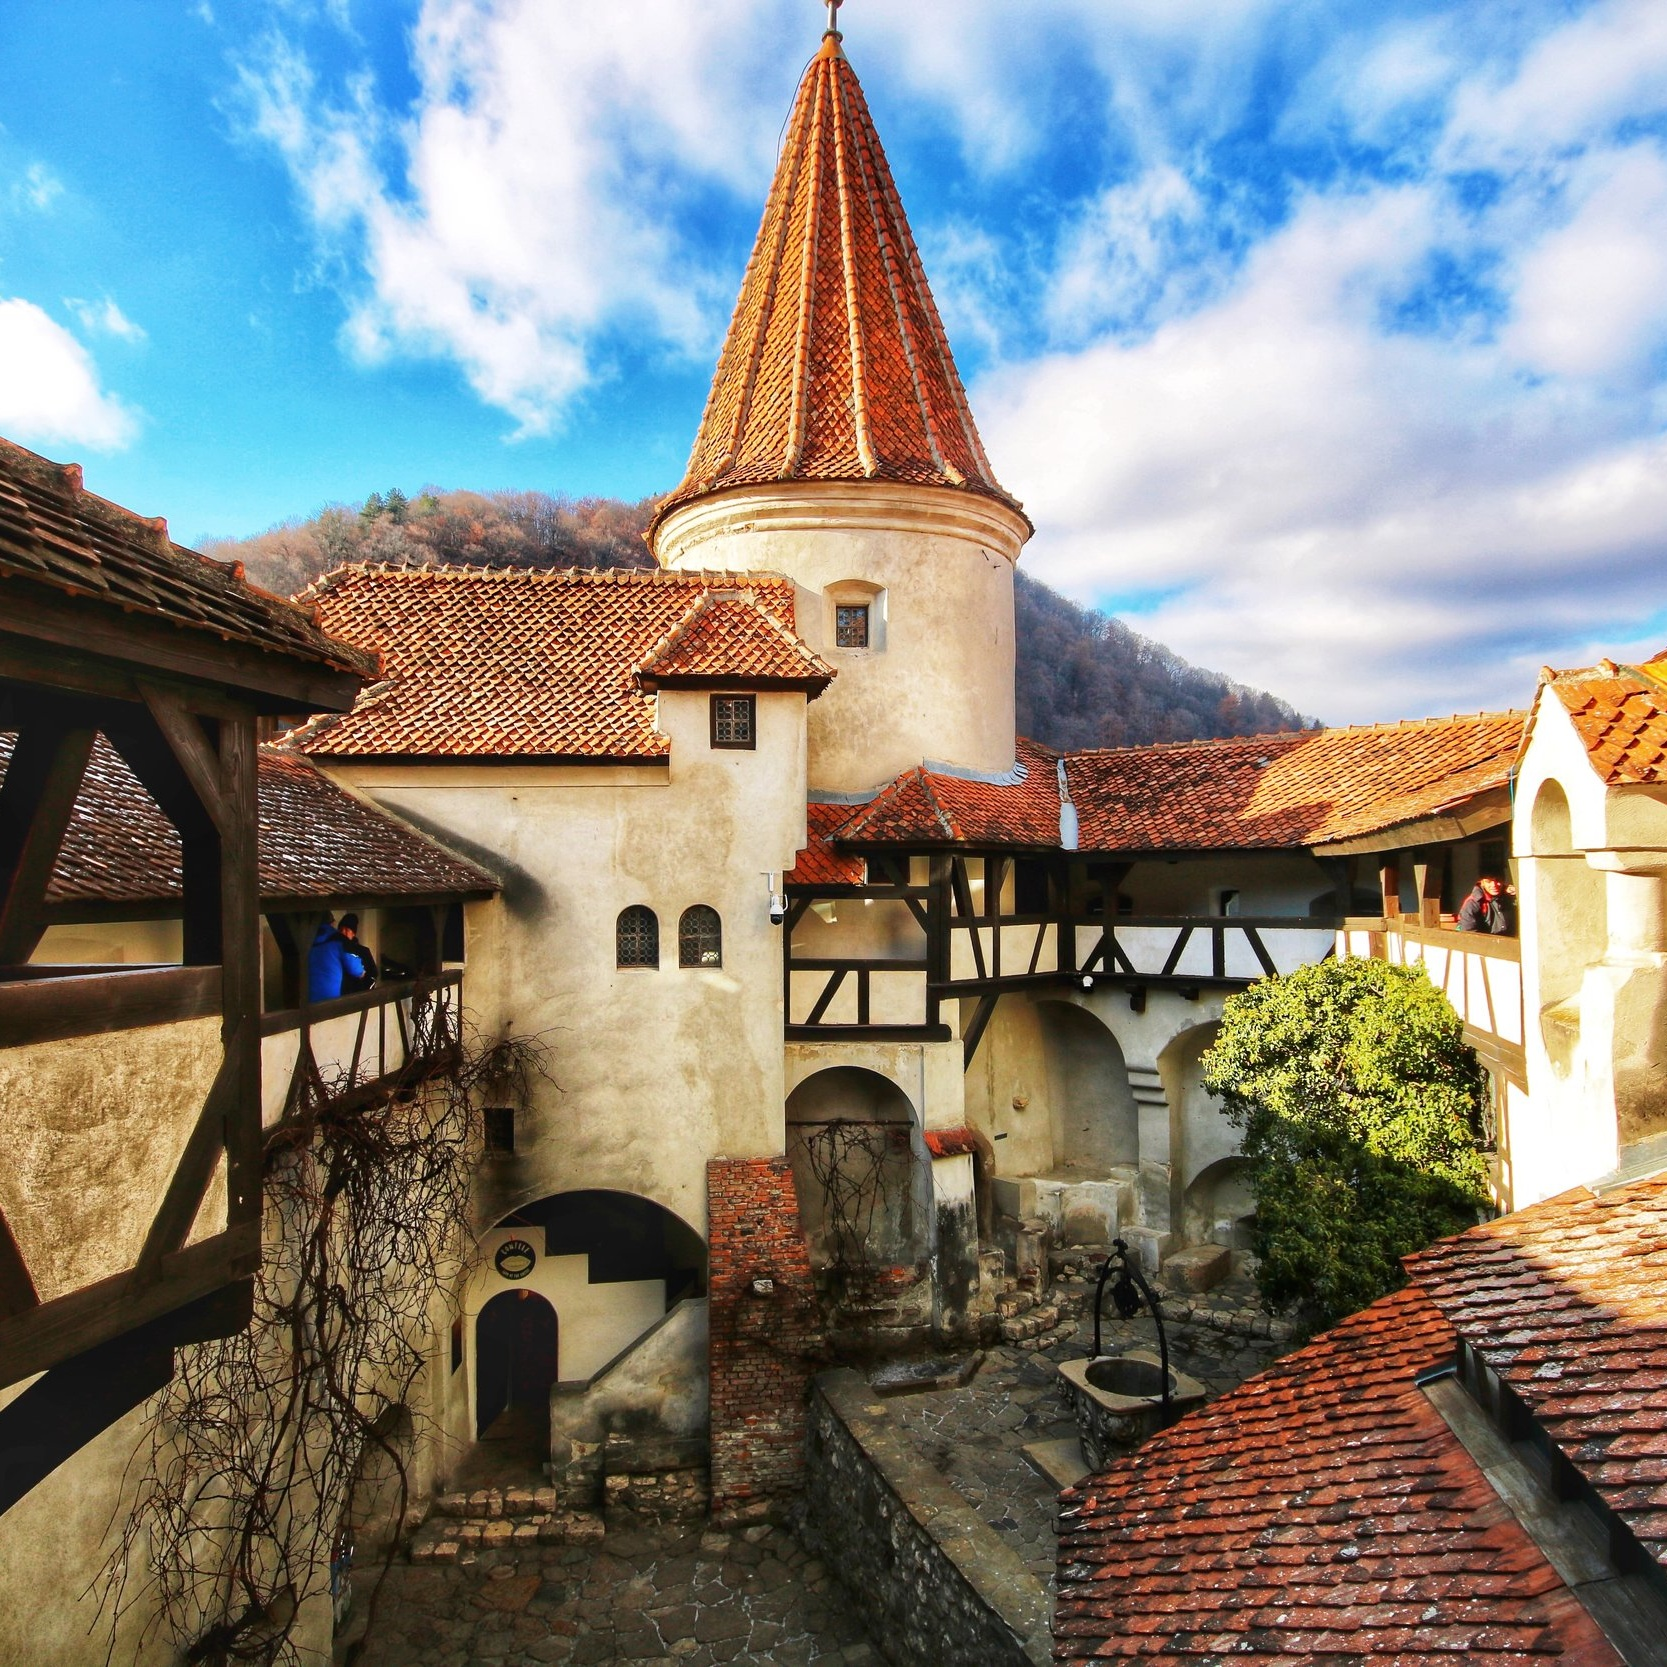 Trip Highlights.. - > Visit Bran Castle, made famous by Dracula!> Networking Drinks with local business owners> Join us on a wine tour in Transylvania> Meet new people and make new connections> Explore Romanian roasts with a coffee shop tour in Bucharest